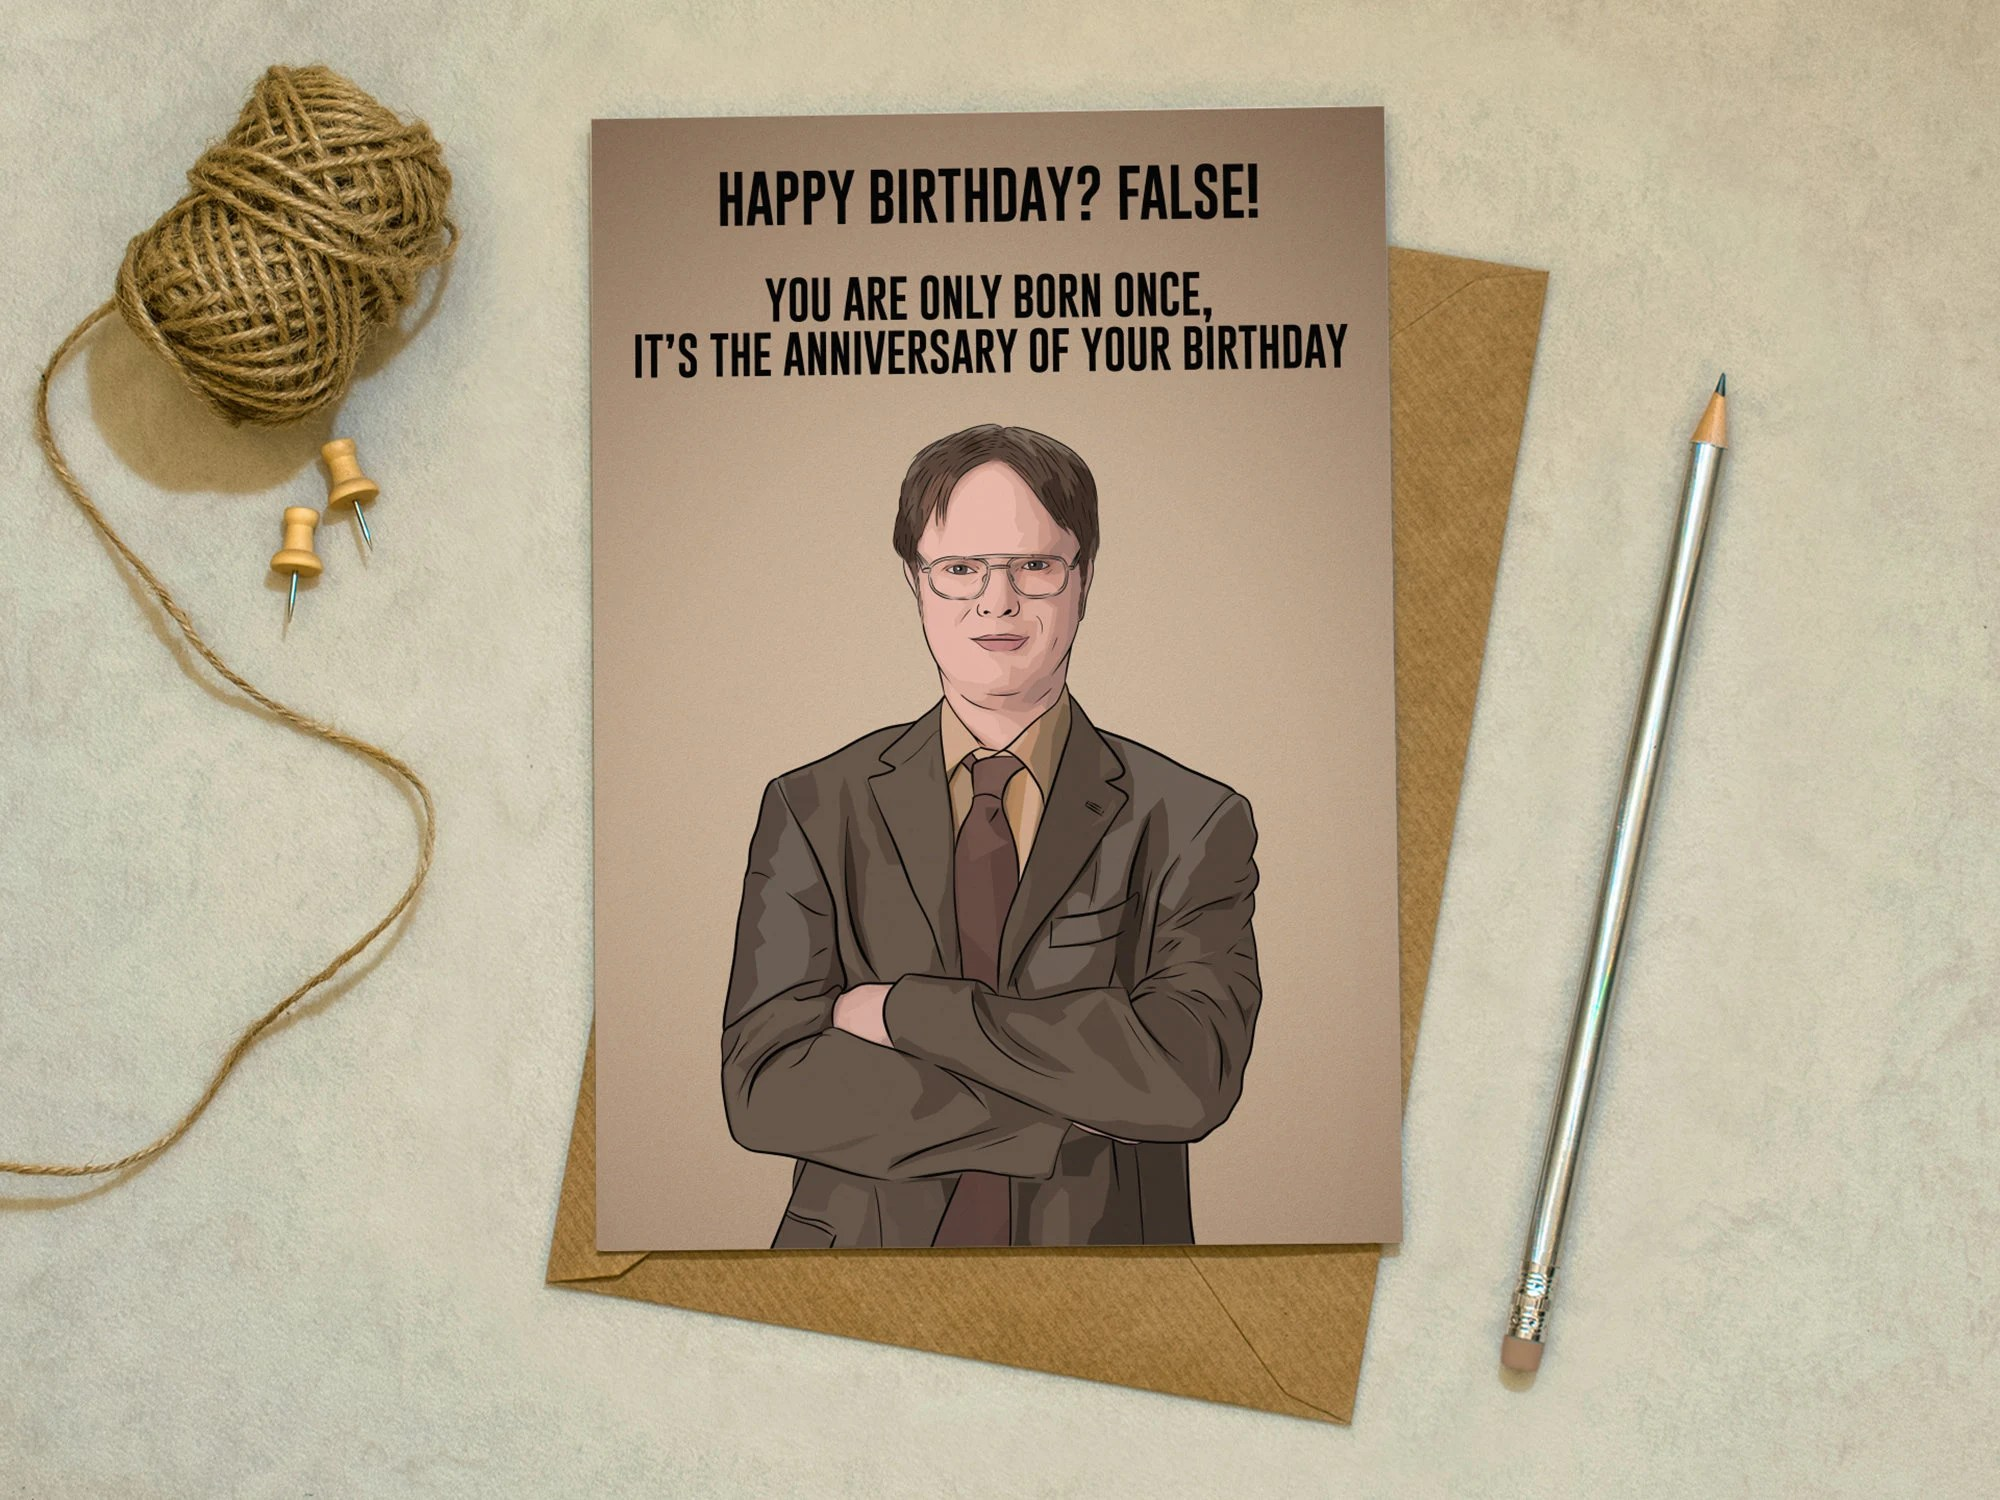 The Office Dwight Schrute False It Is Your Birthday Etsy